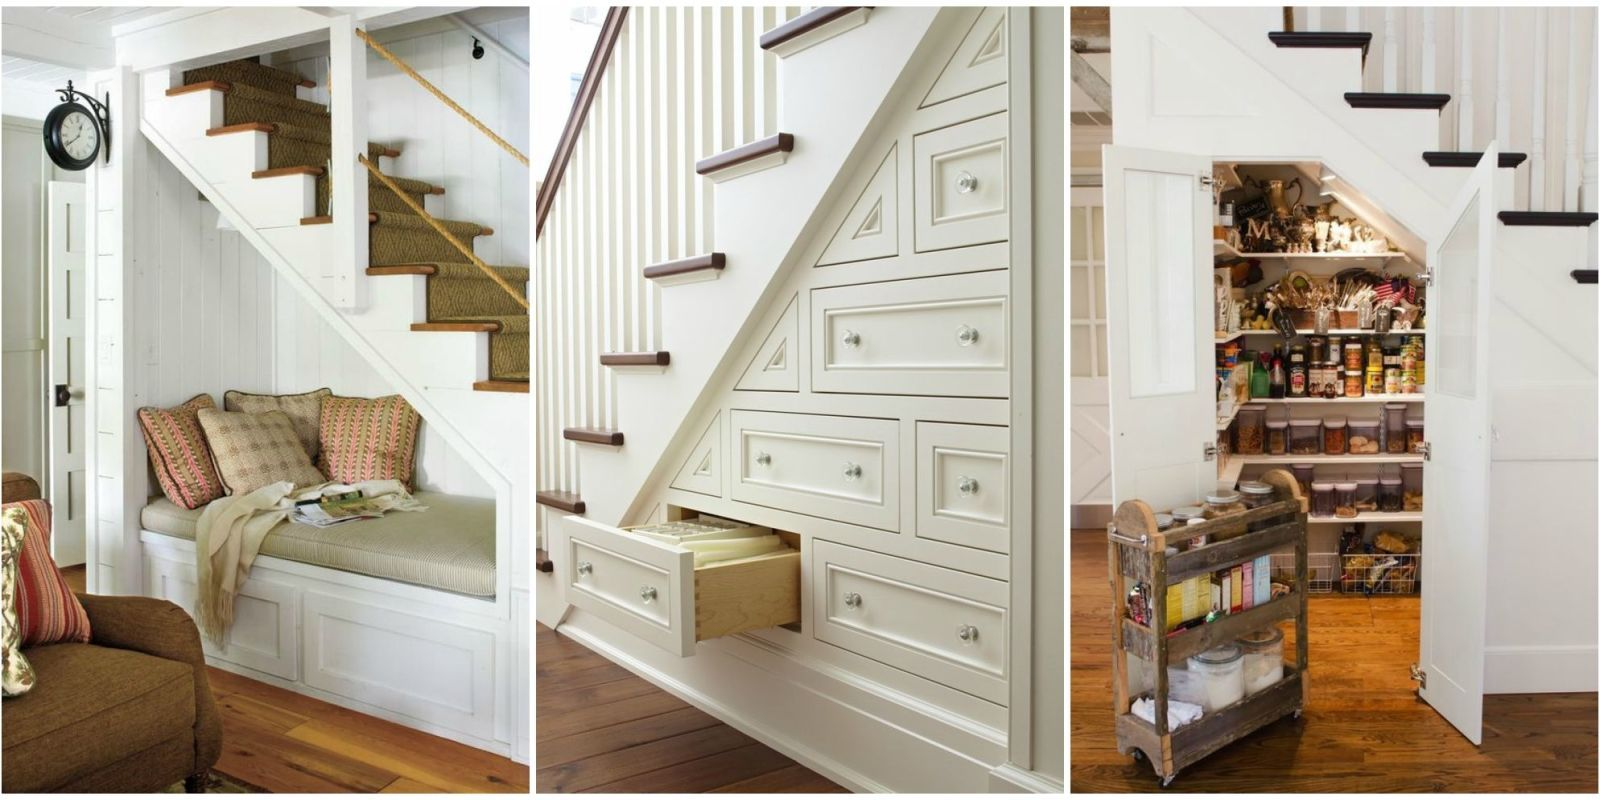 Wondering if thereu0027s a way to make use of that empty space under your staircase? You can transform this overlooked area into a place for your pet to snooze ... & 15 Genius under Stairs Storage Ideas - What to Do With Empty Space ...